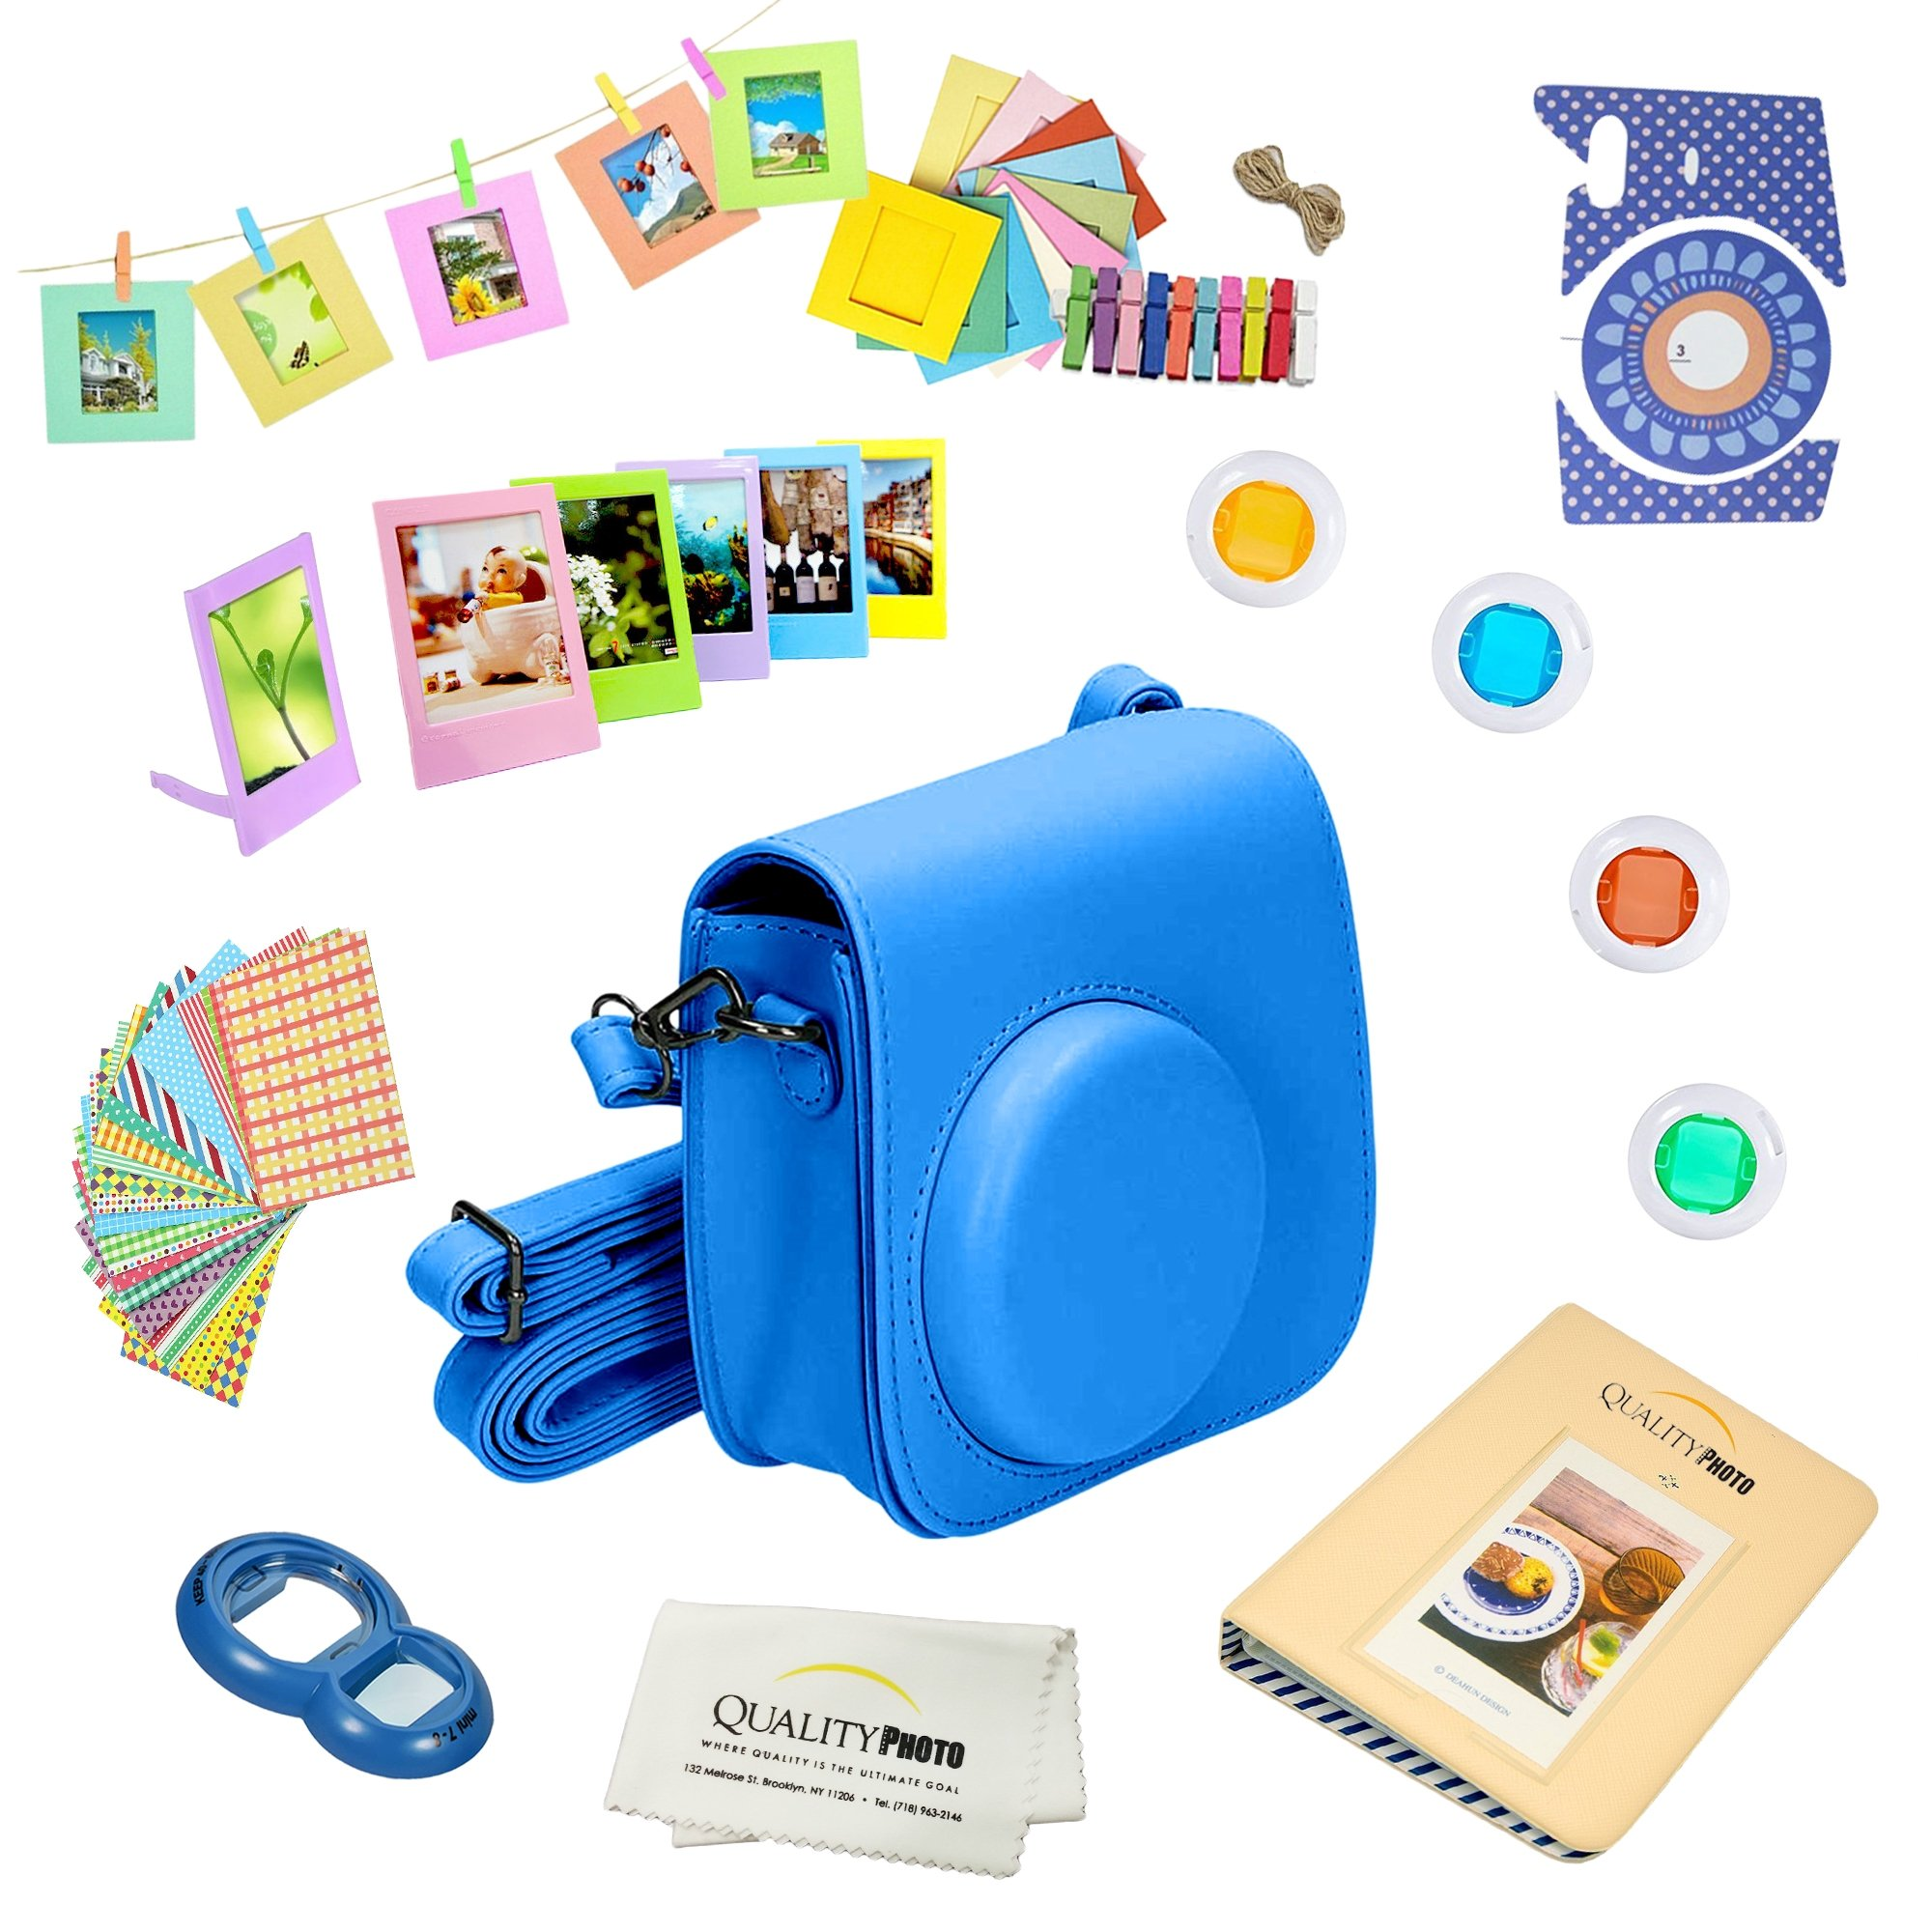 Quality Photo Instant Camera 12-Piece Accessories Bundle -Cobalt Blue- Compatible for Fujifilm Instax Mini 8 & Mini 9 Camera Includes; Case W/Strap, Lens Filters, Photo Album & Frames + More